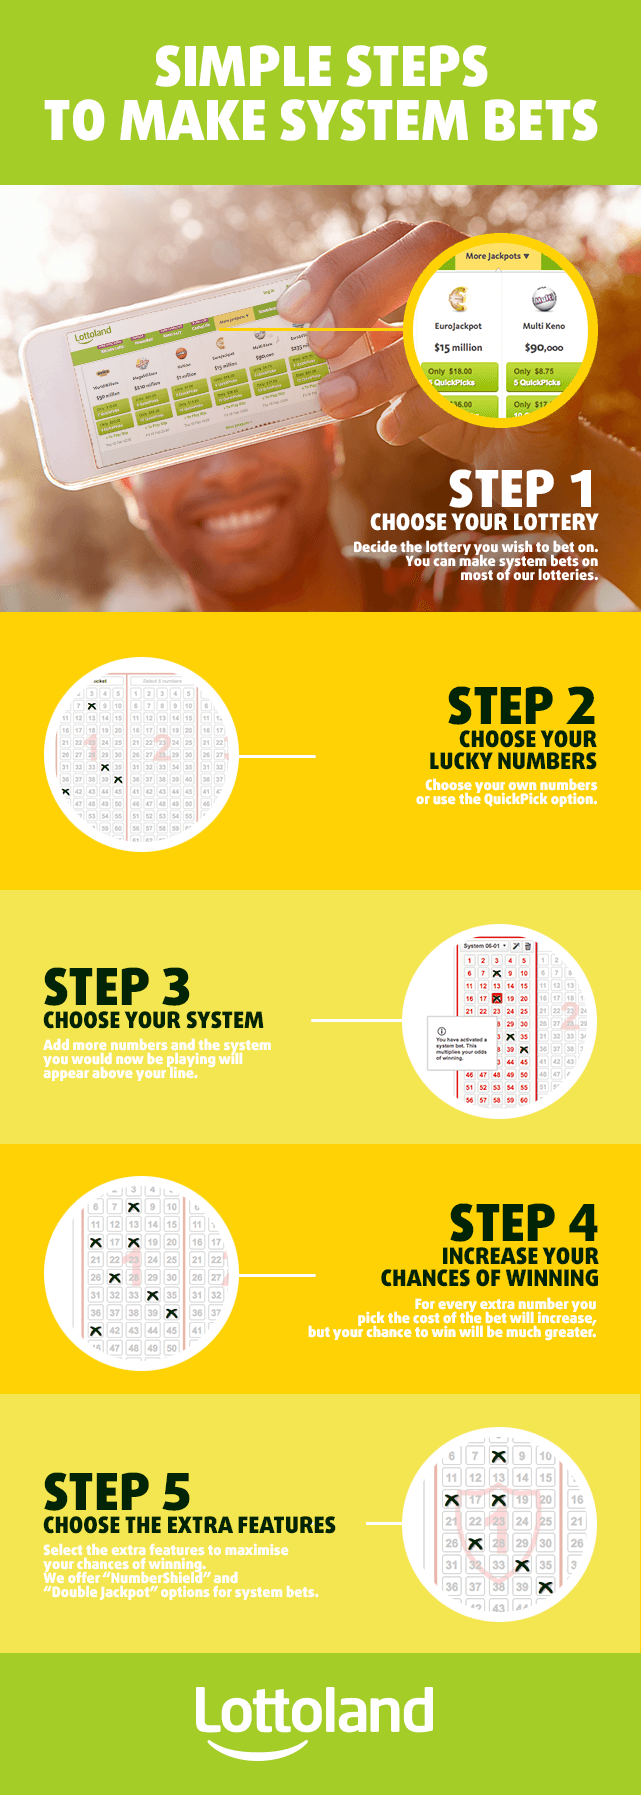 How to Use Lottery System Bets - Lottoland com